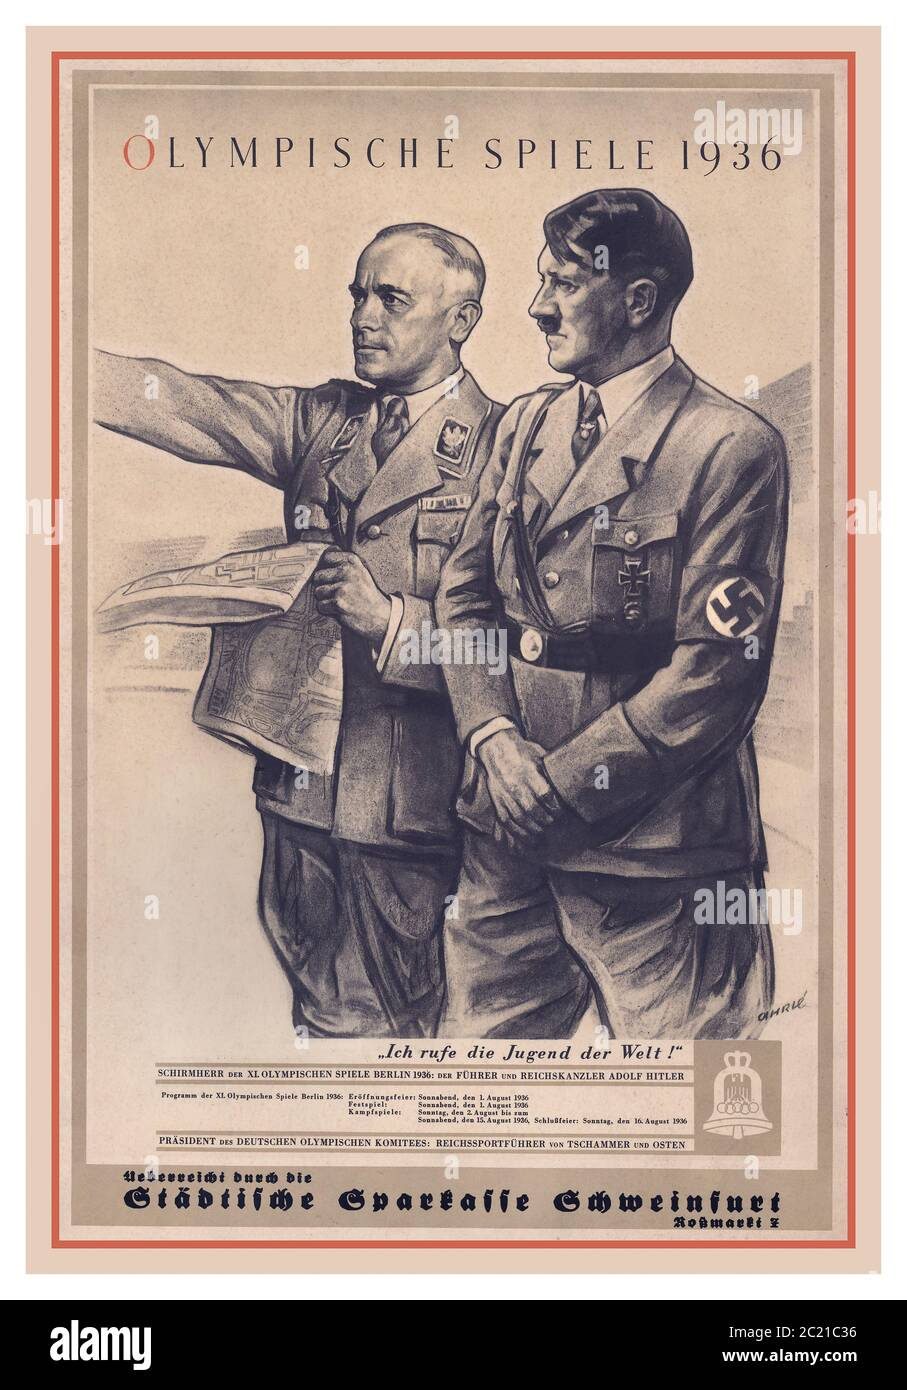 Berlin Olympics 1936 Vintage Poster With Adolf Hitler And Reich Sports Office Director Tschammer Und Osten Study The Site Of The 1936 Summer Olympics German Olympische Sommerspiele 1936 Officially Known As The